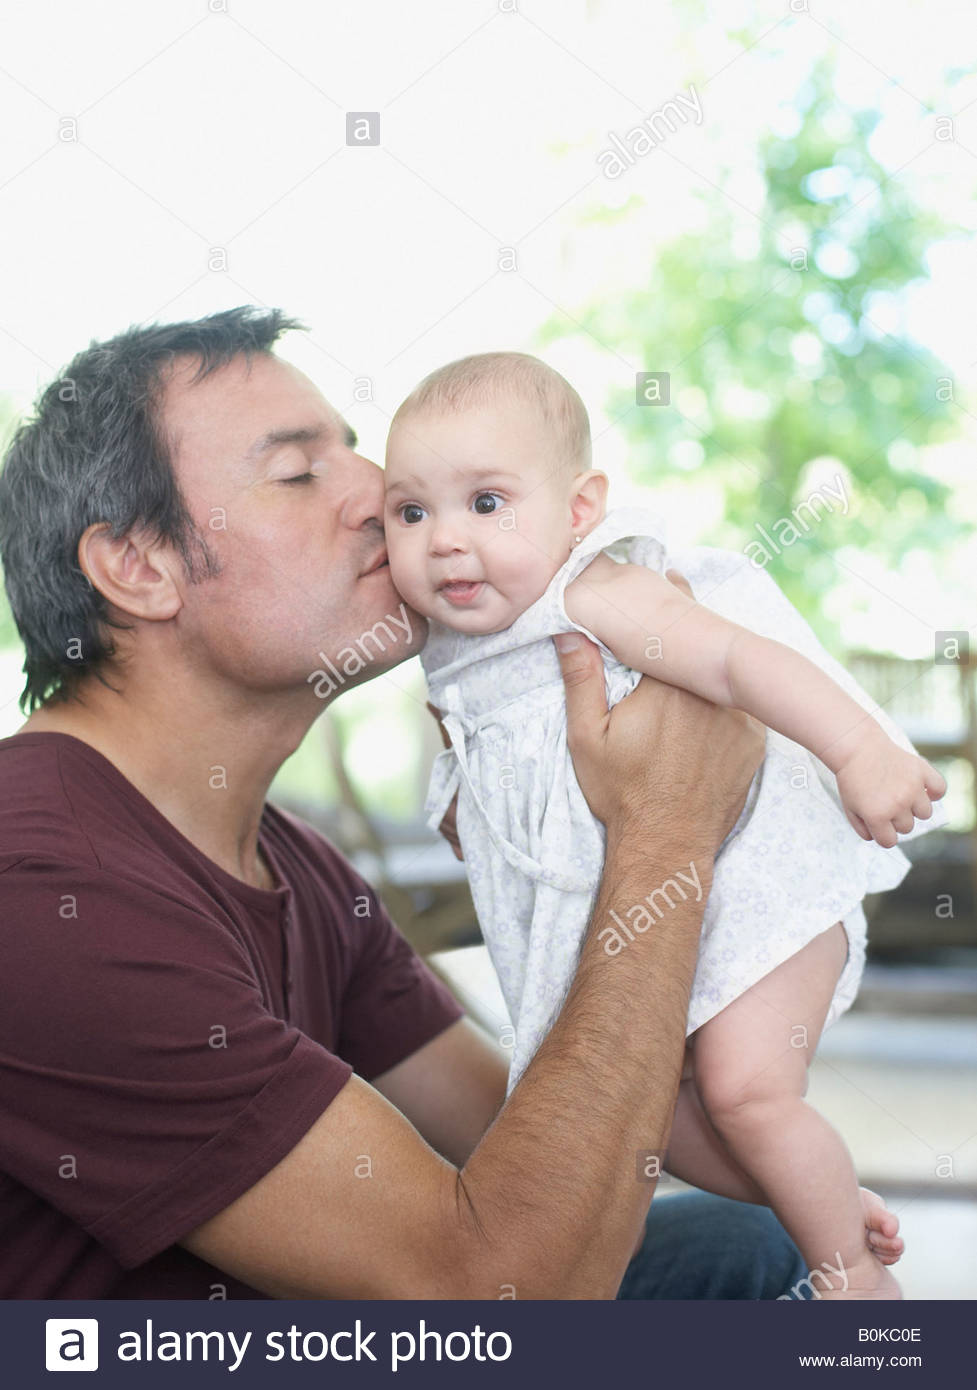 Man sitting outdoors kissing baby - Stock Image